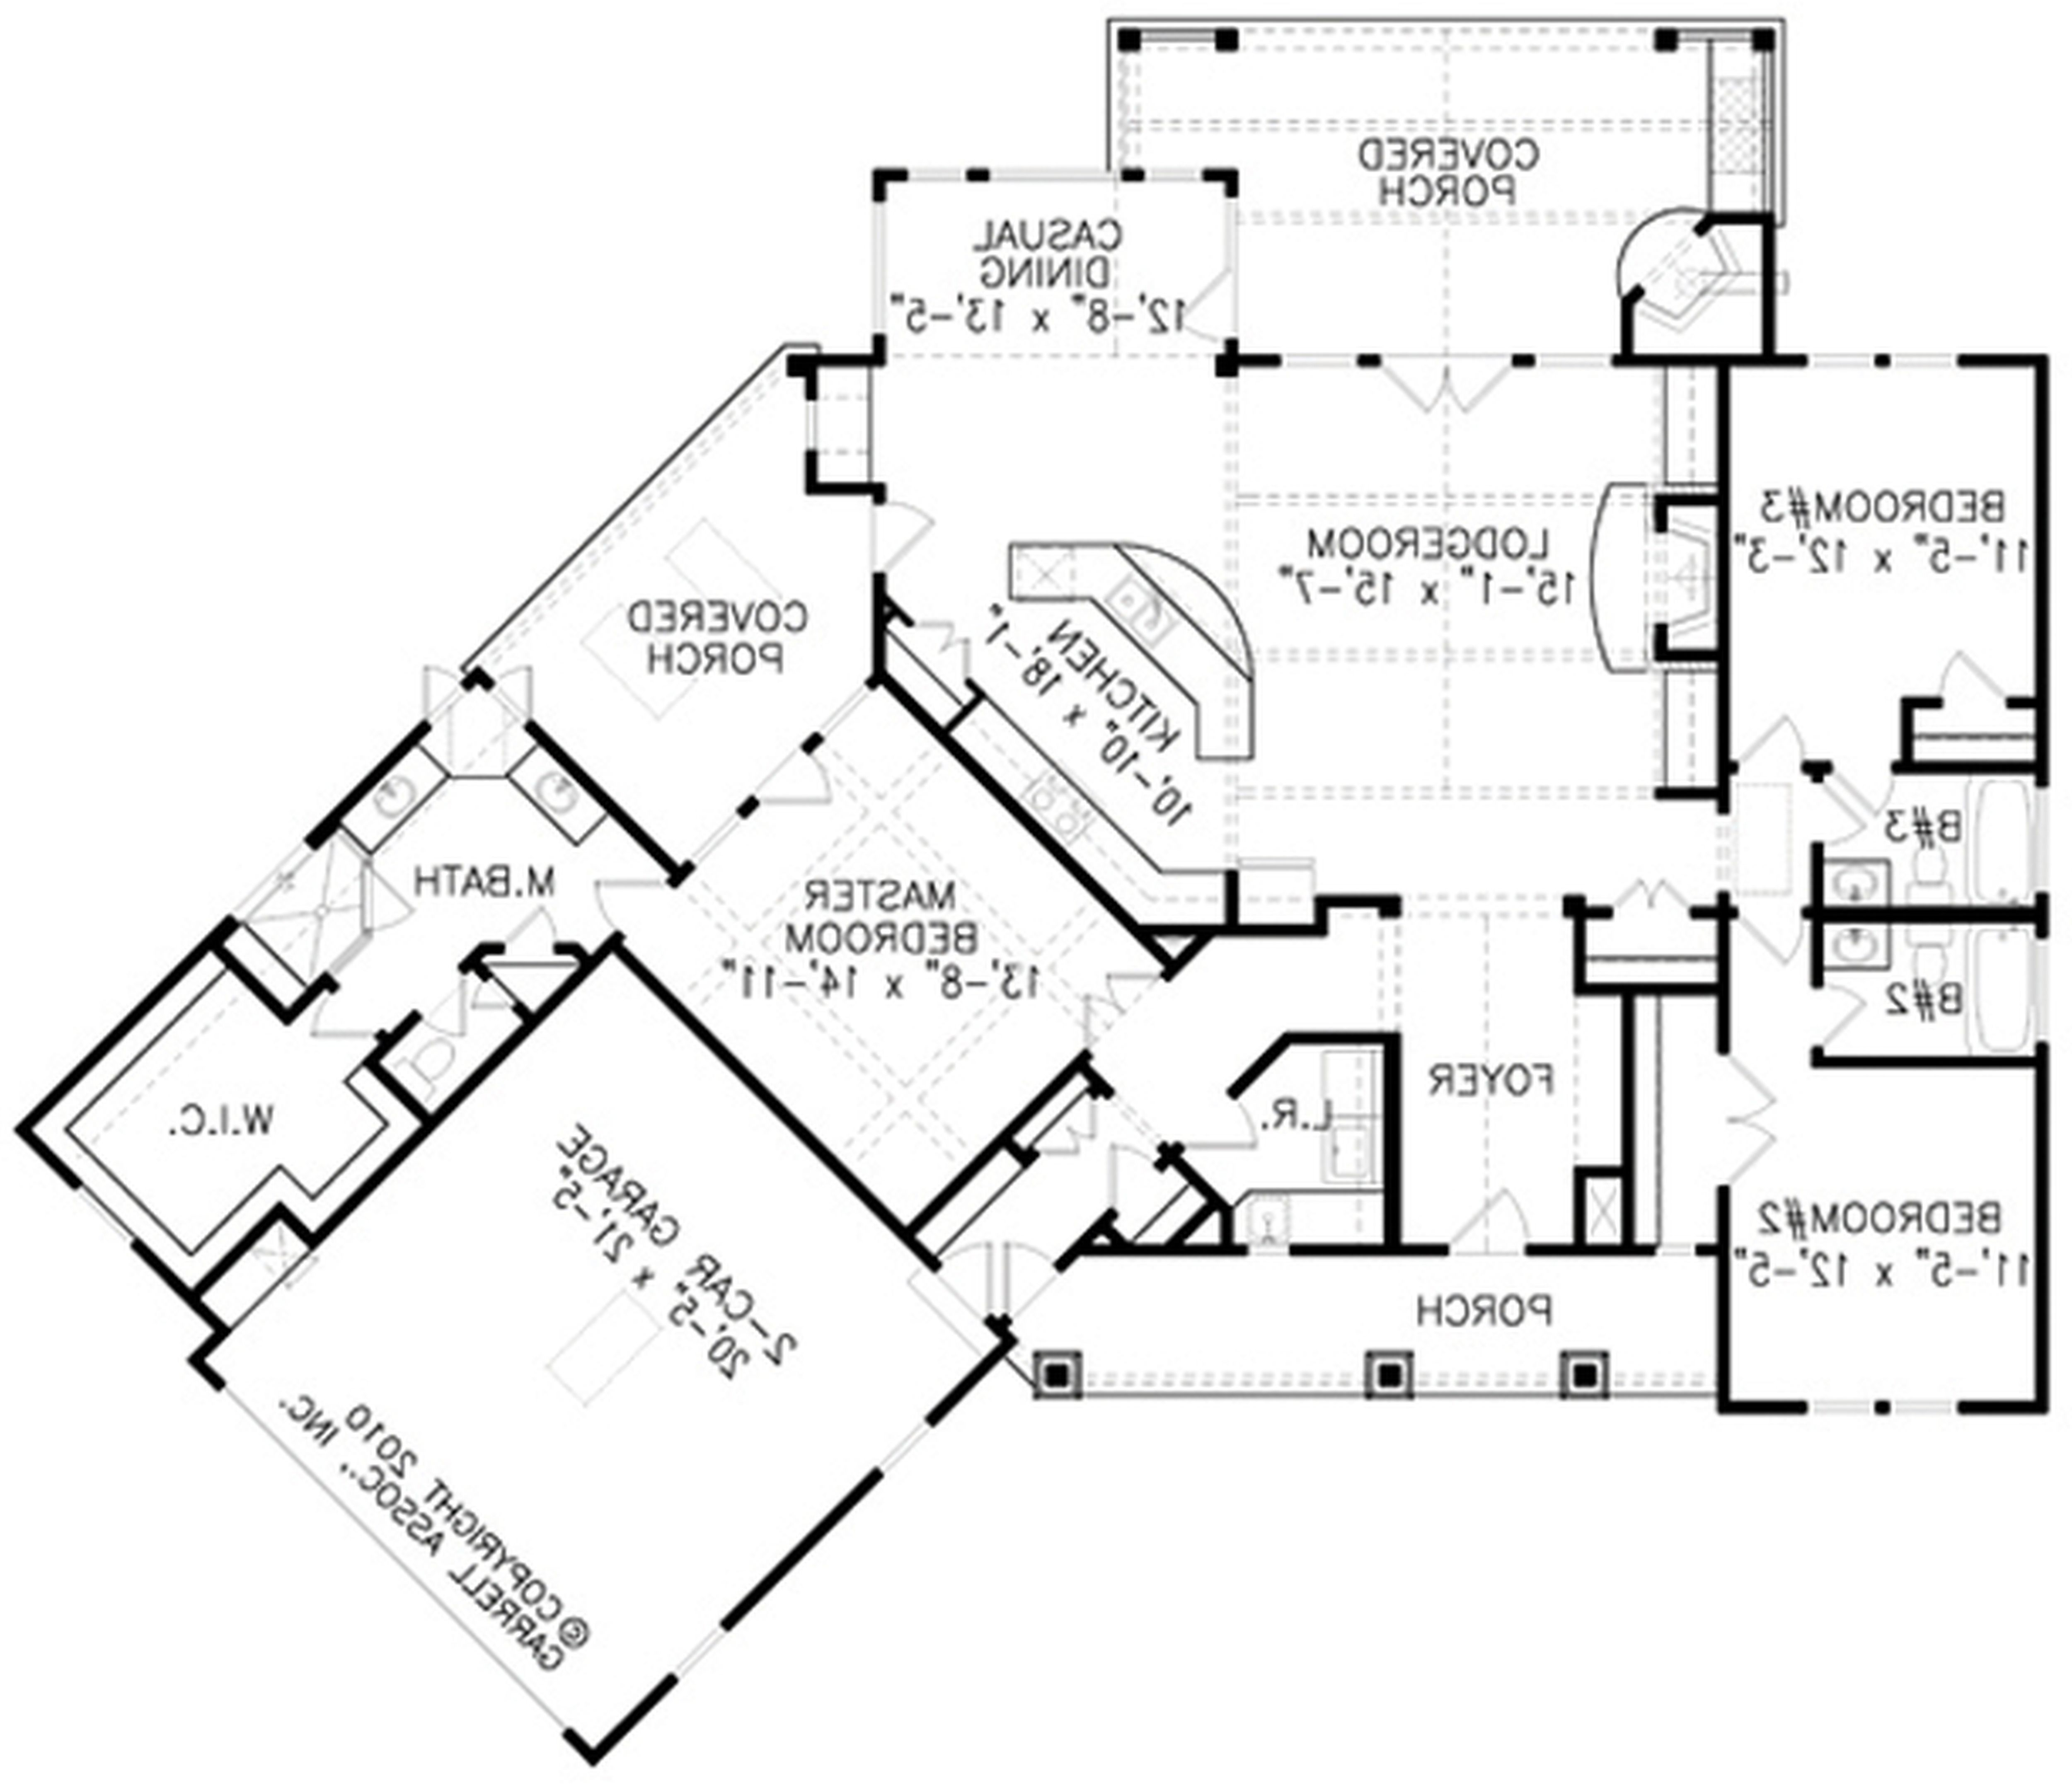 ^ 1000+ images about House Plans on Pinterest anch style house ...